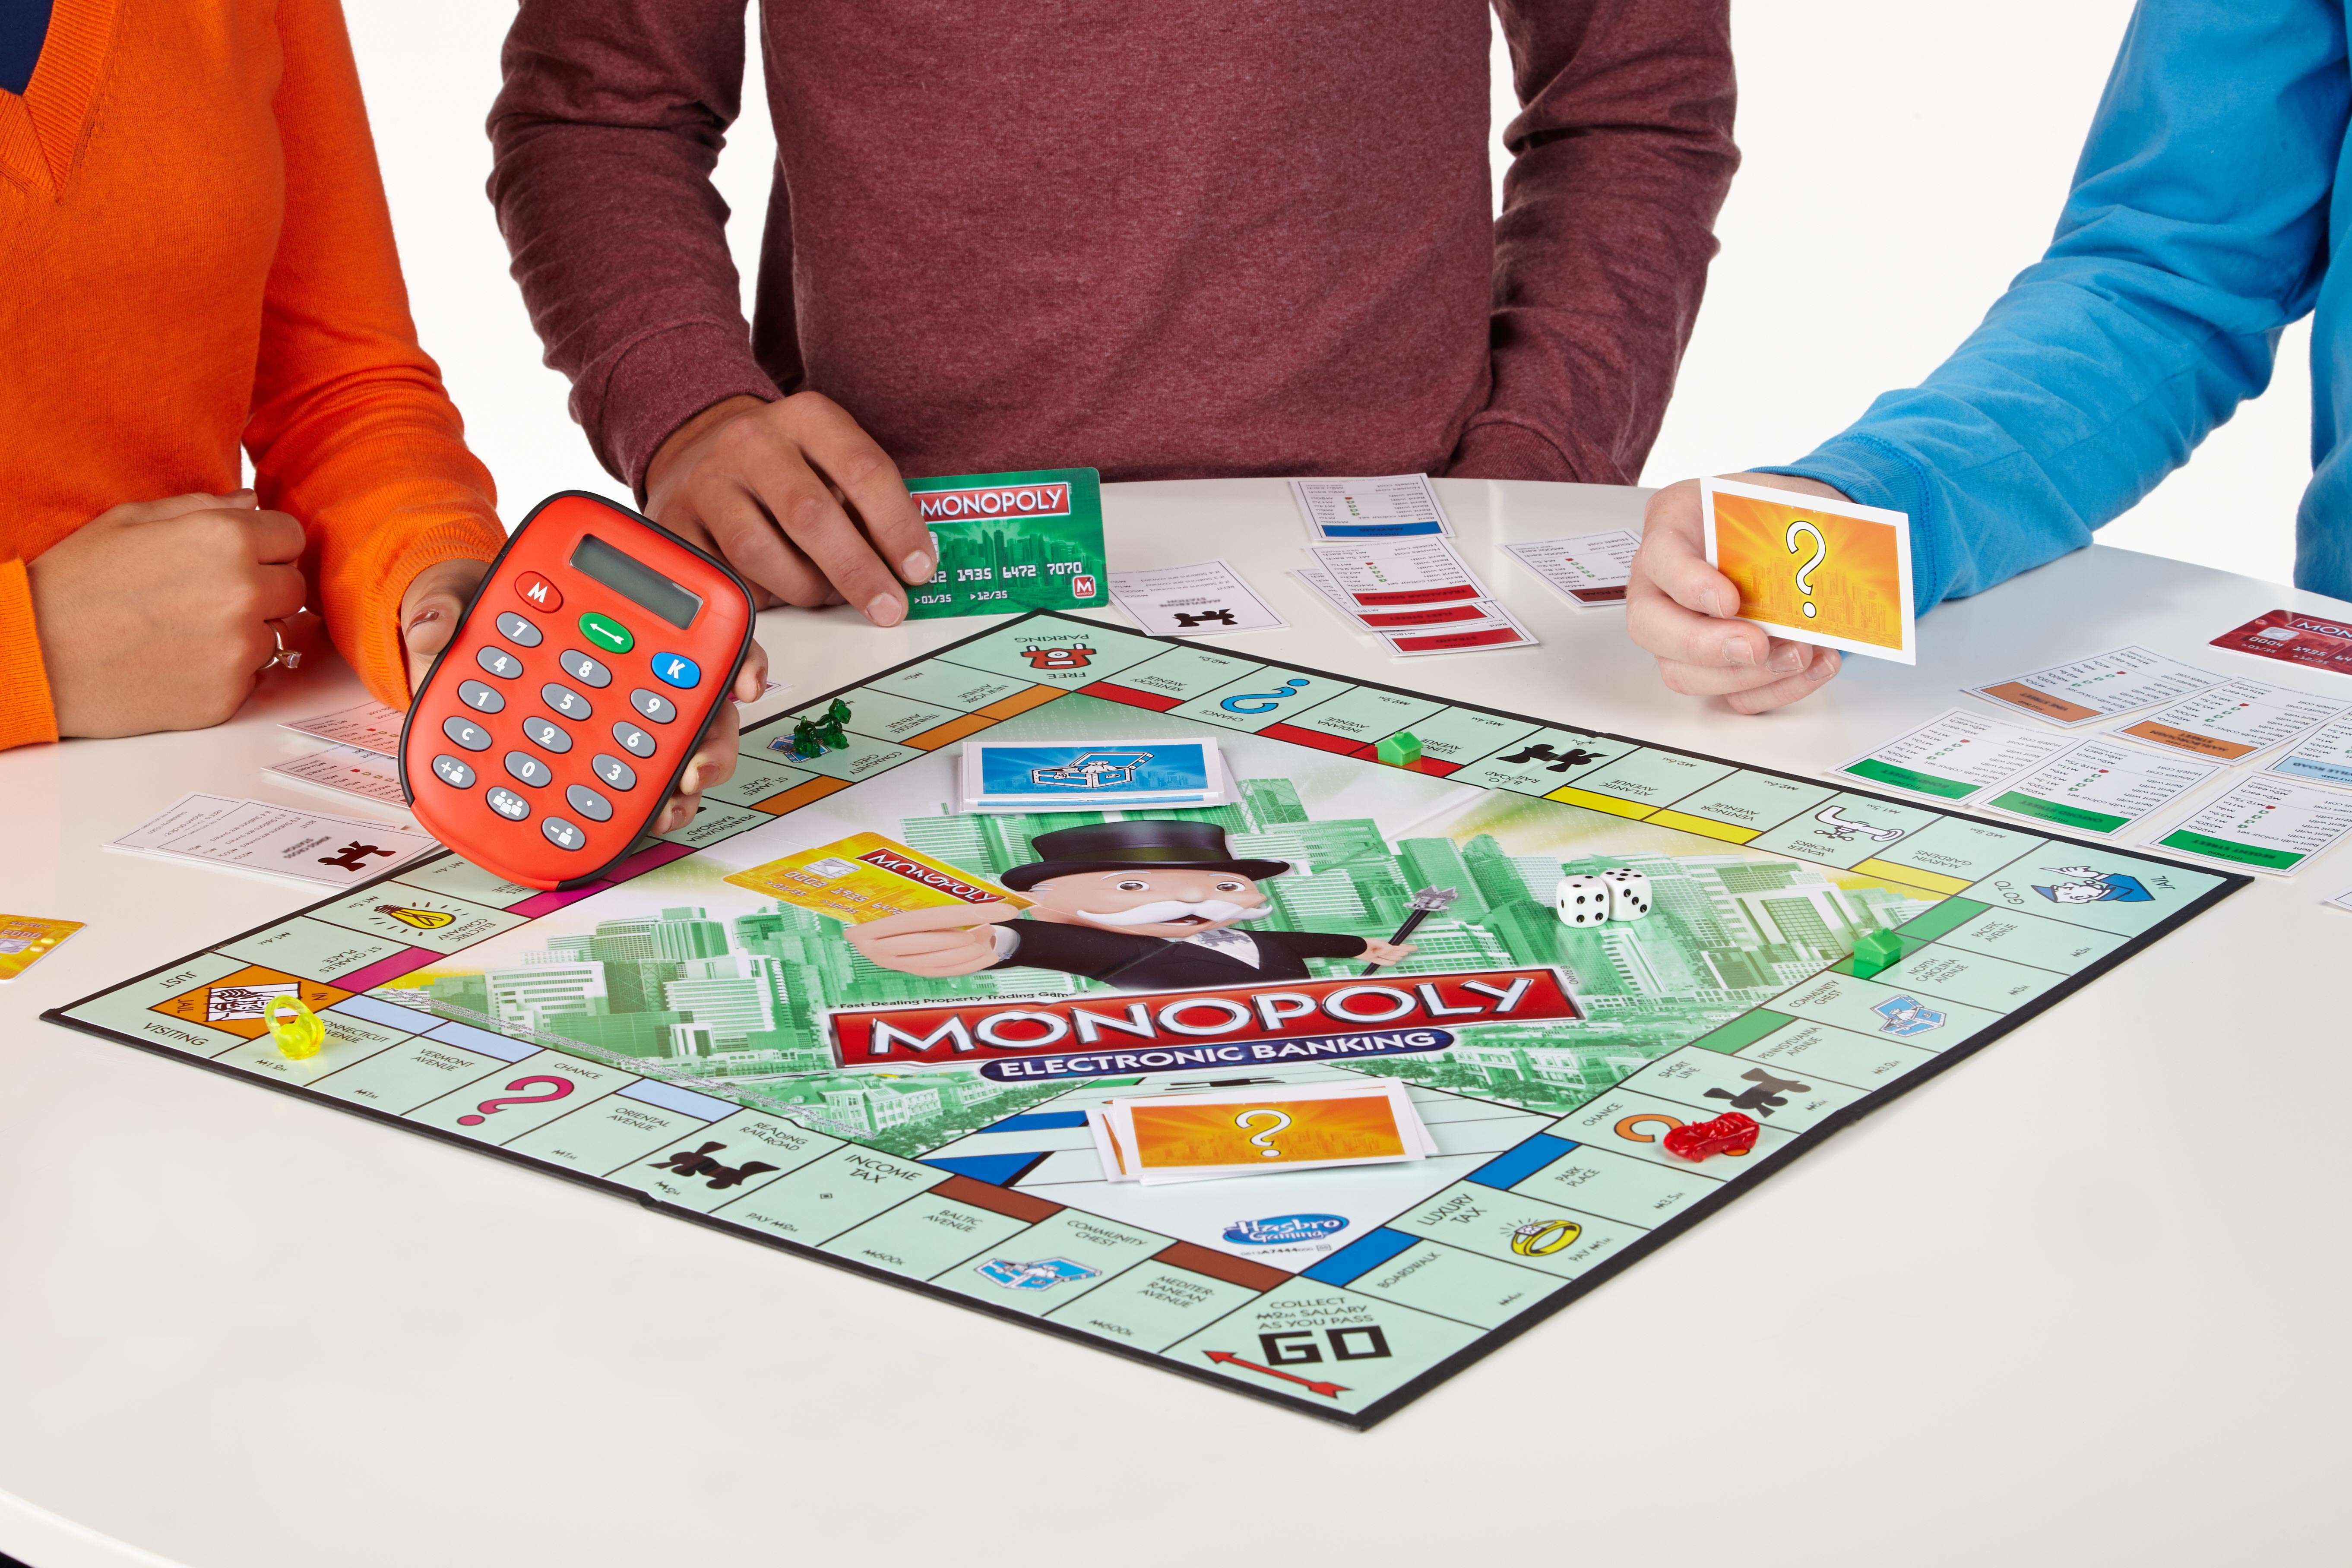 Inspired By The Move To Digital Economy In India Mr Monopoly Goes - Digital board game table